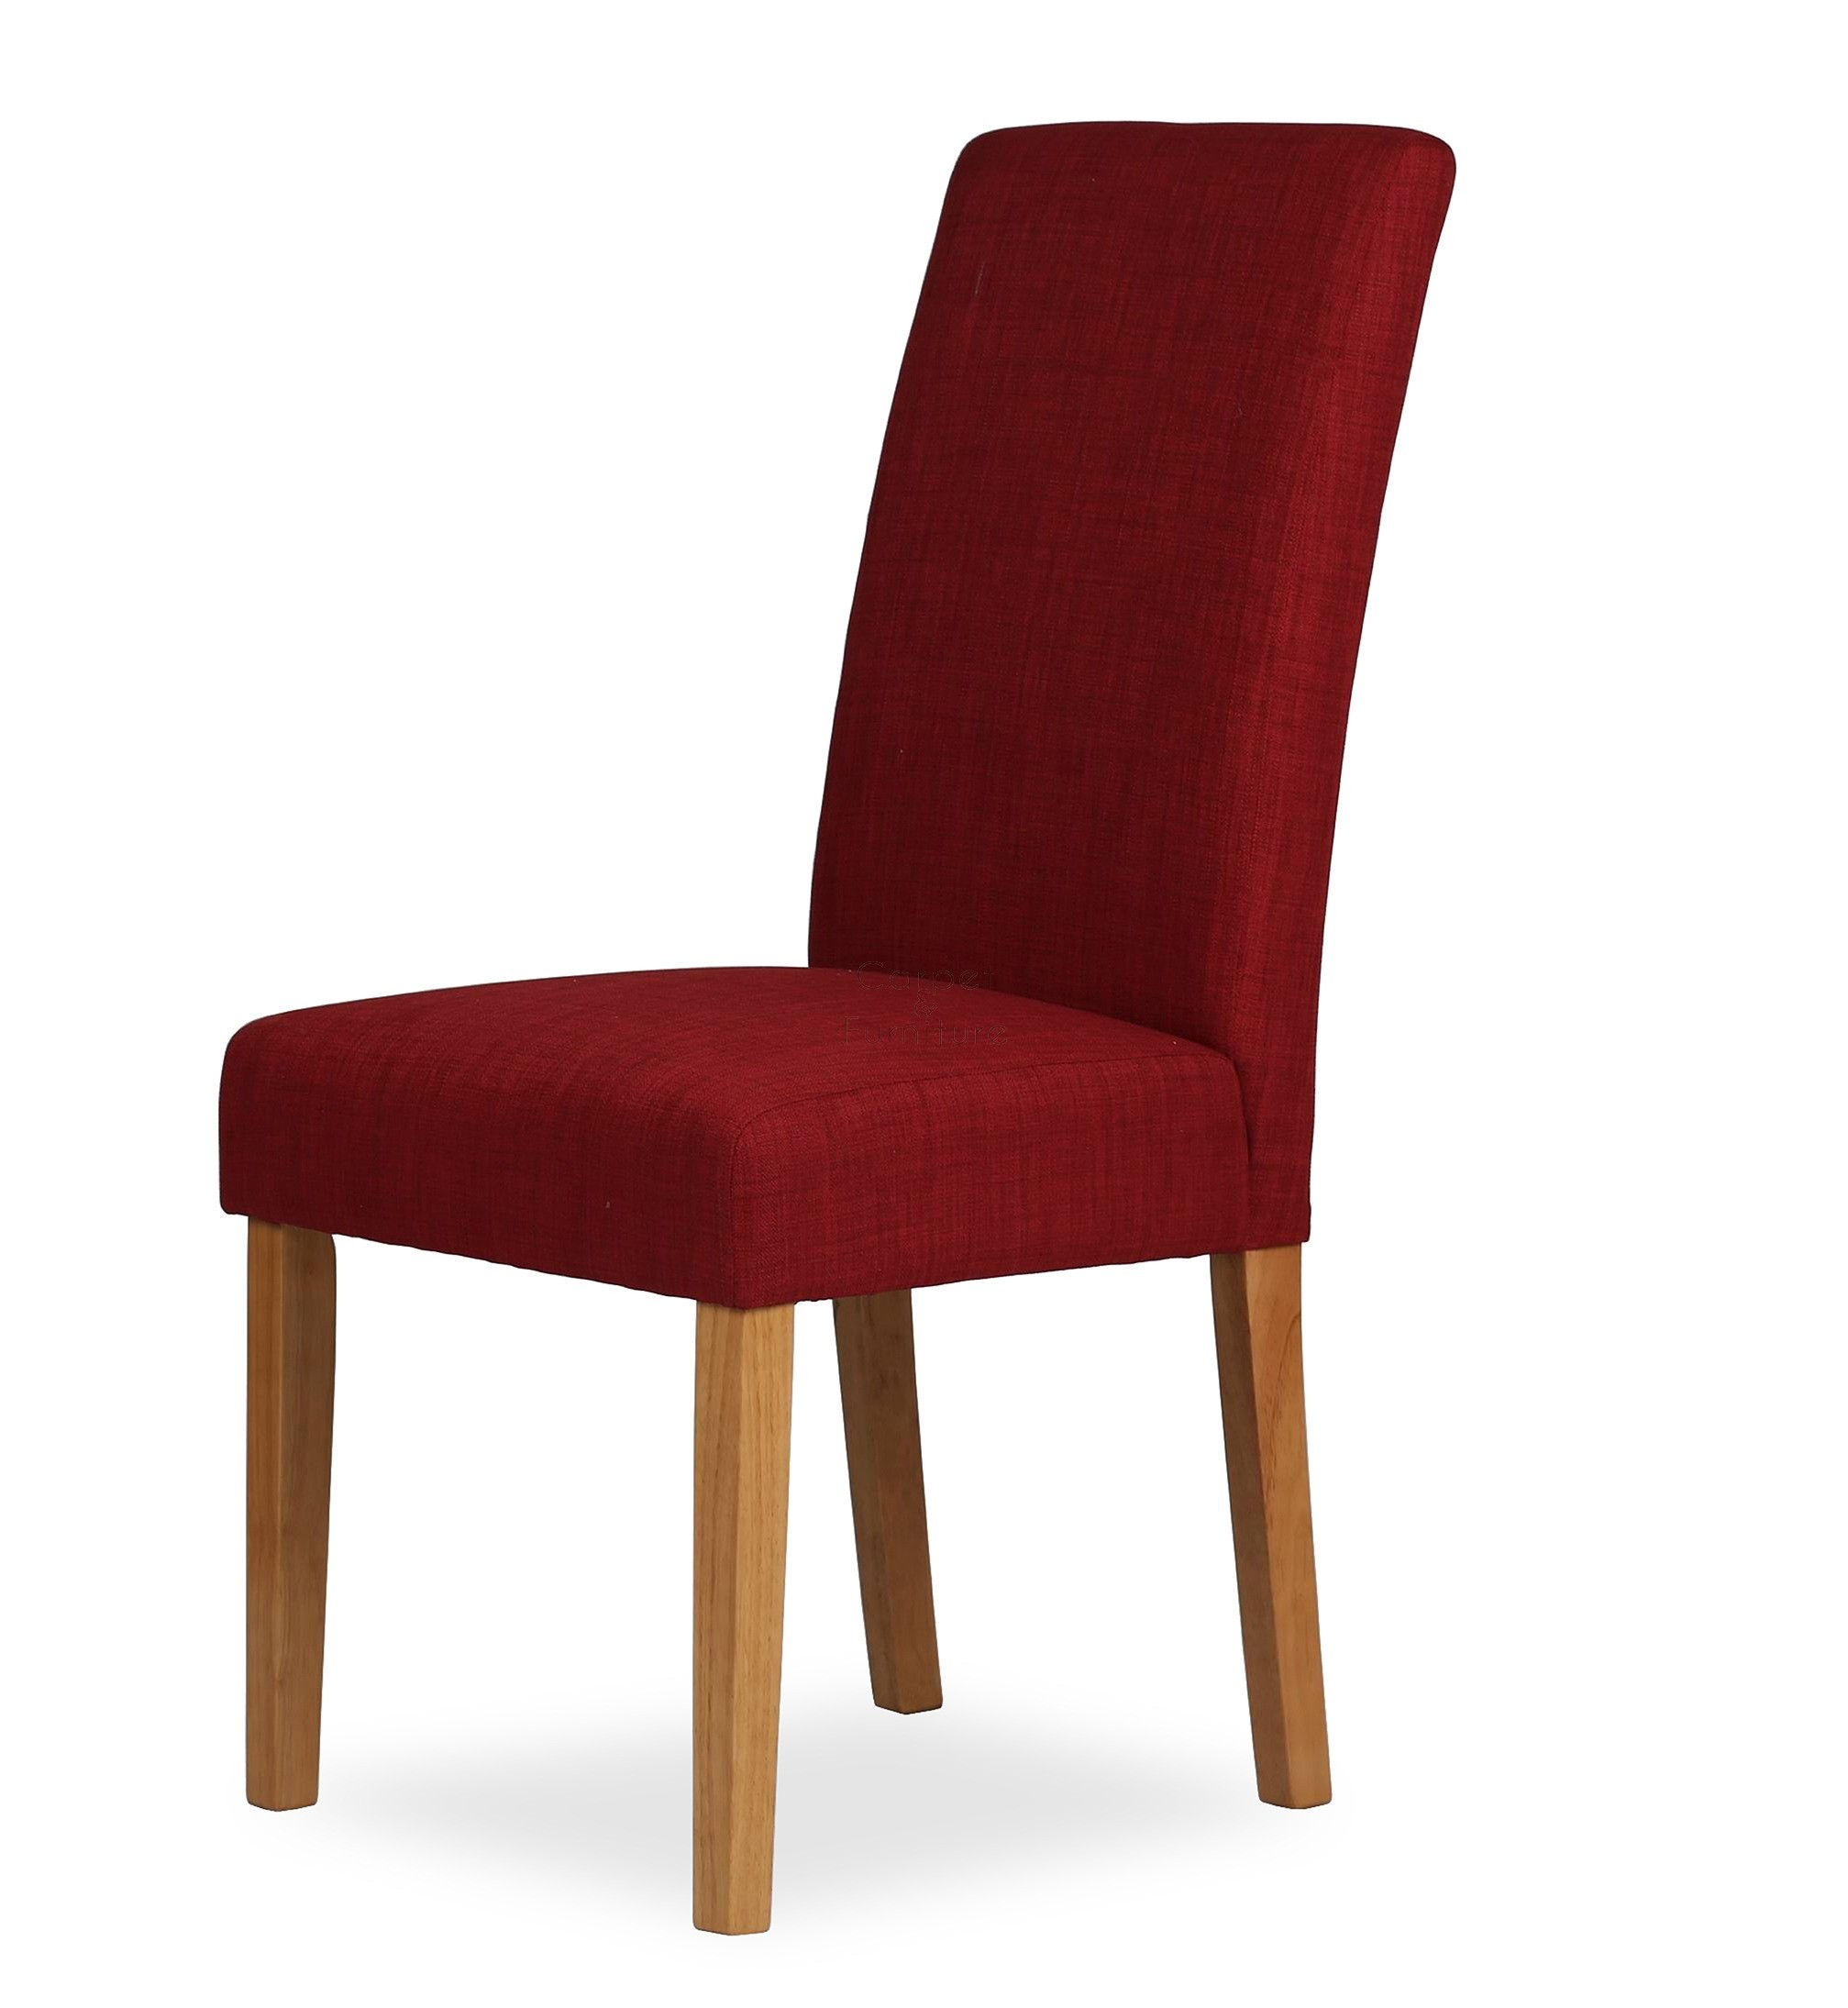 Upholstered Dining Chair Claret Red